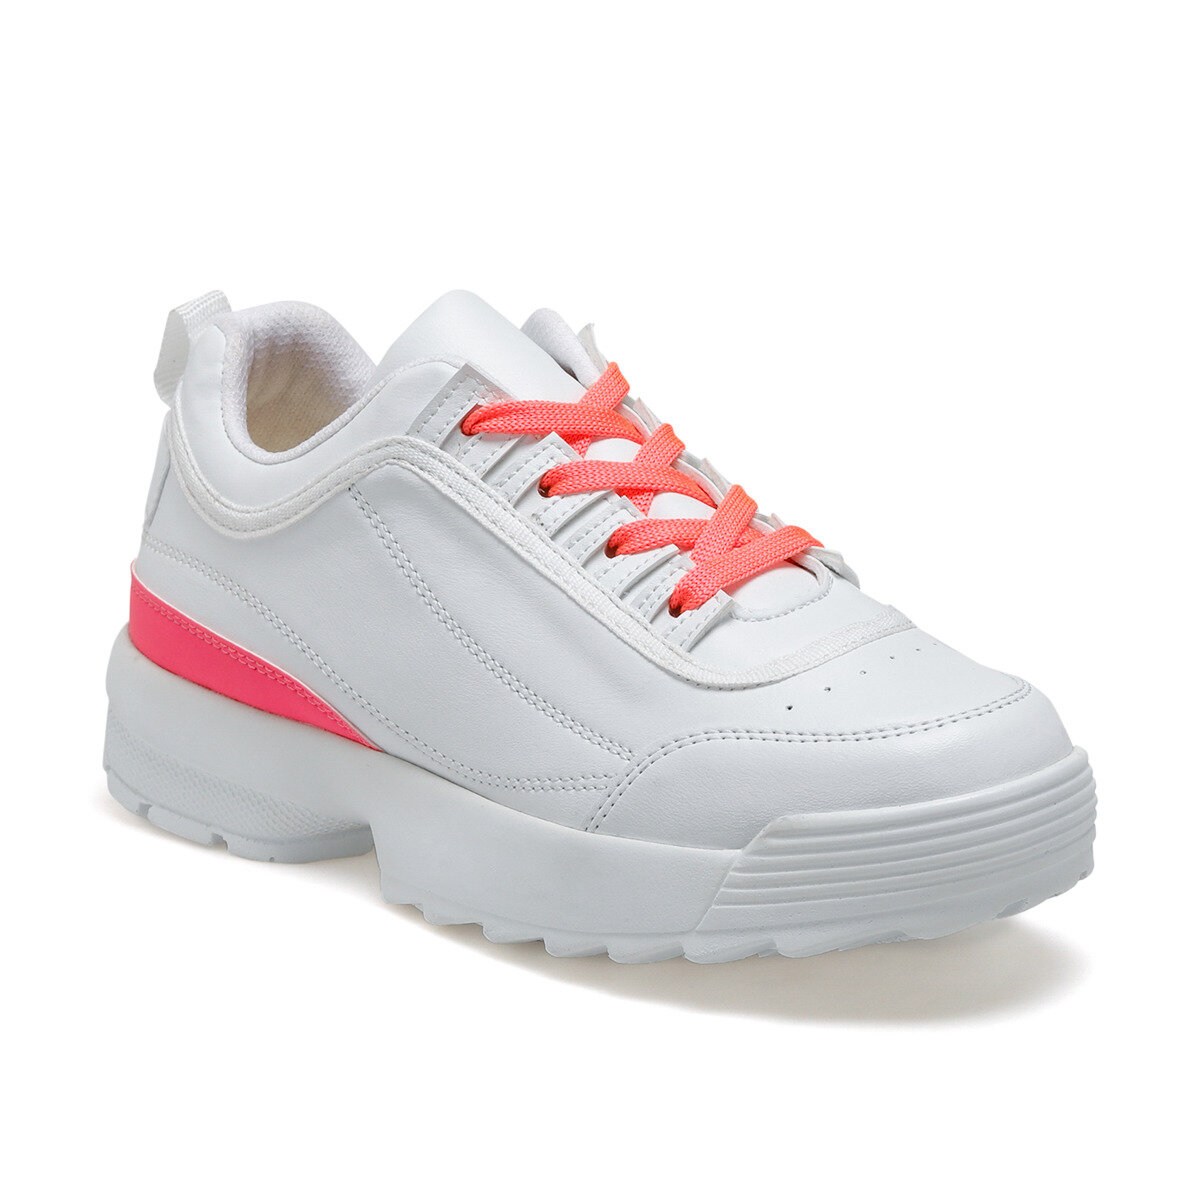 FLO 20S-336 White Women 'S Sneaker Shoes BUTIGO